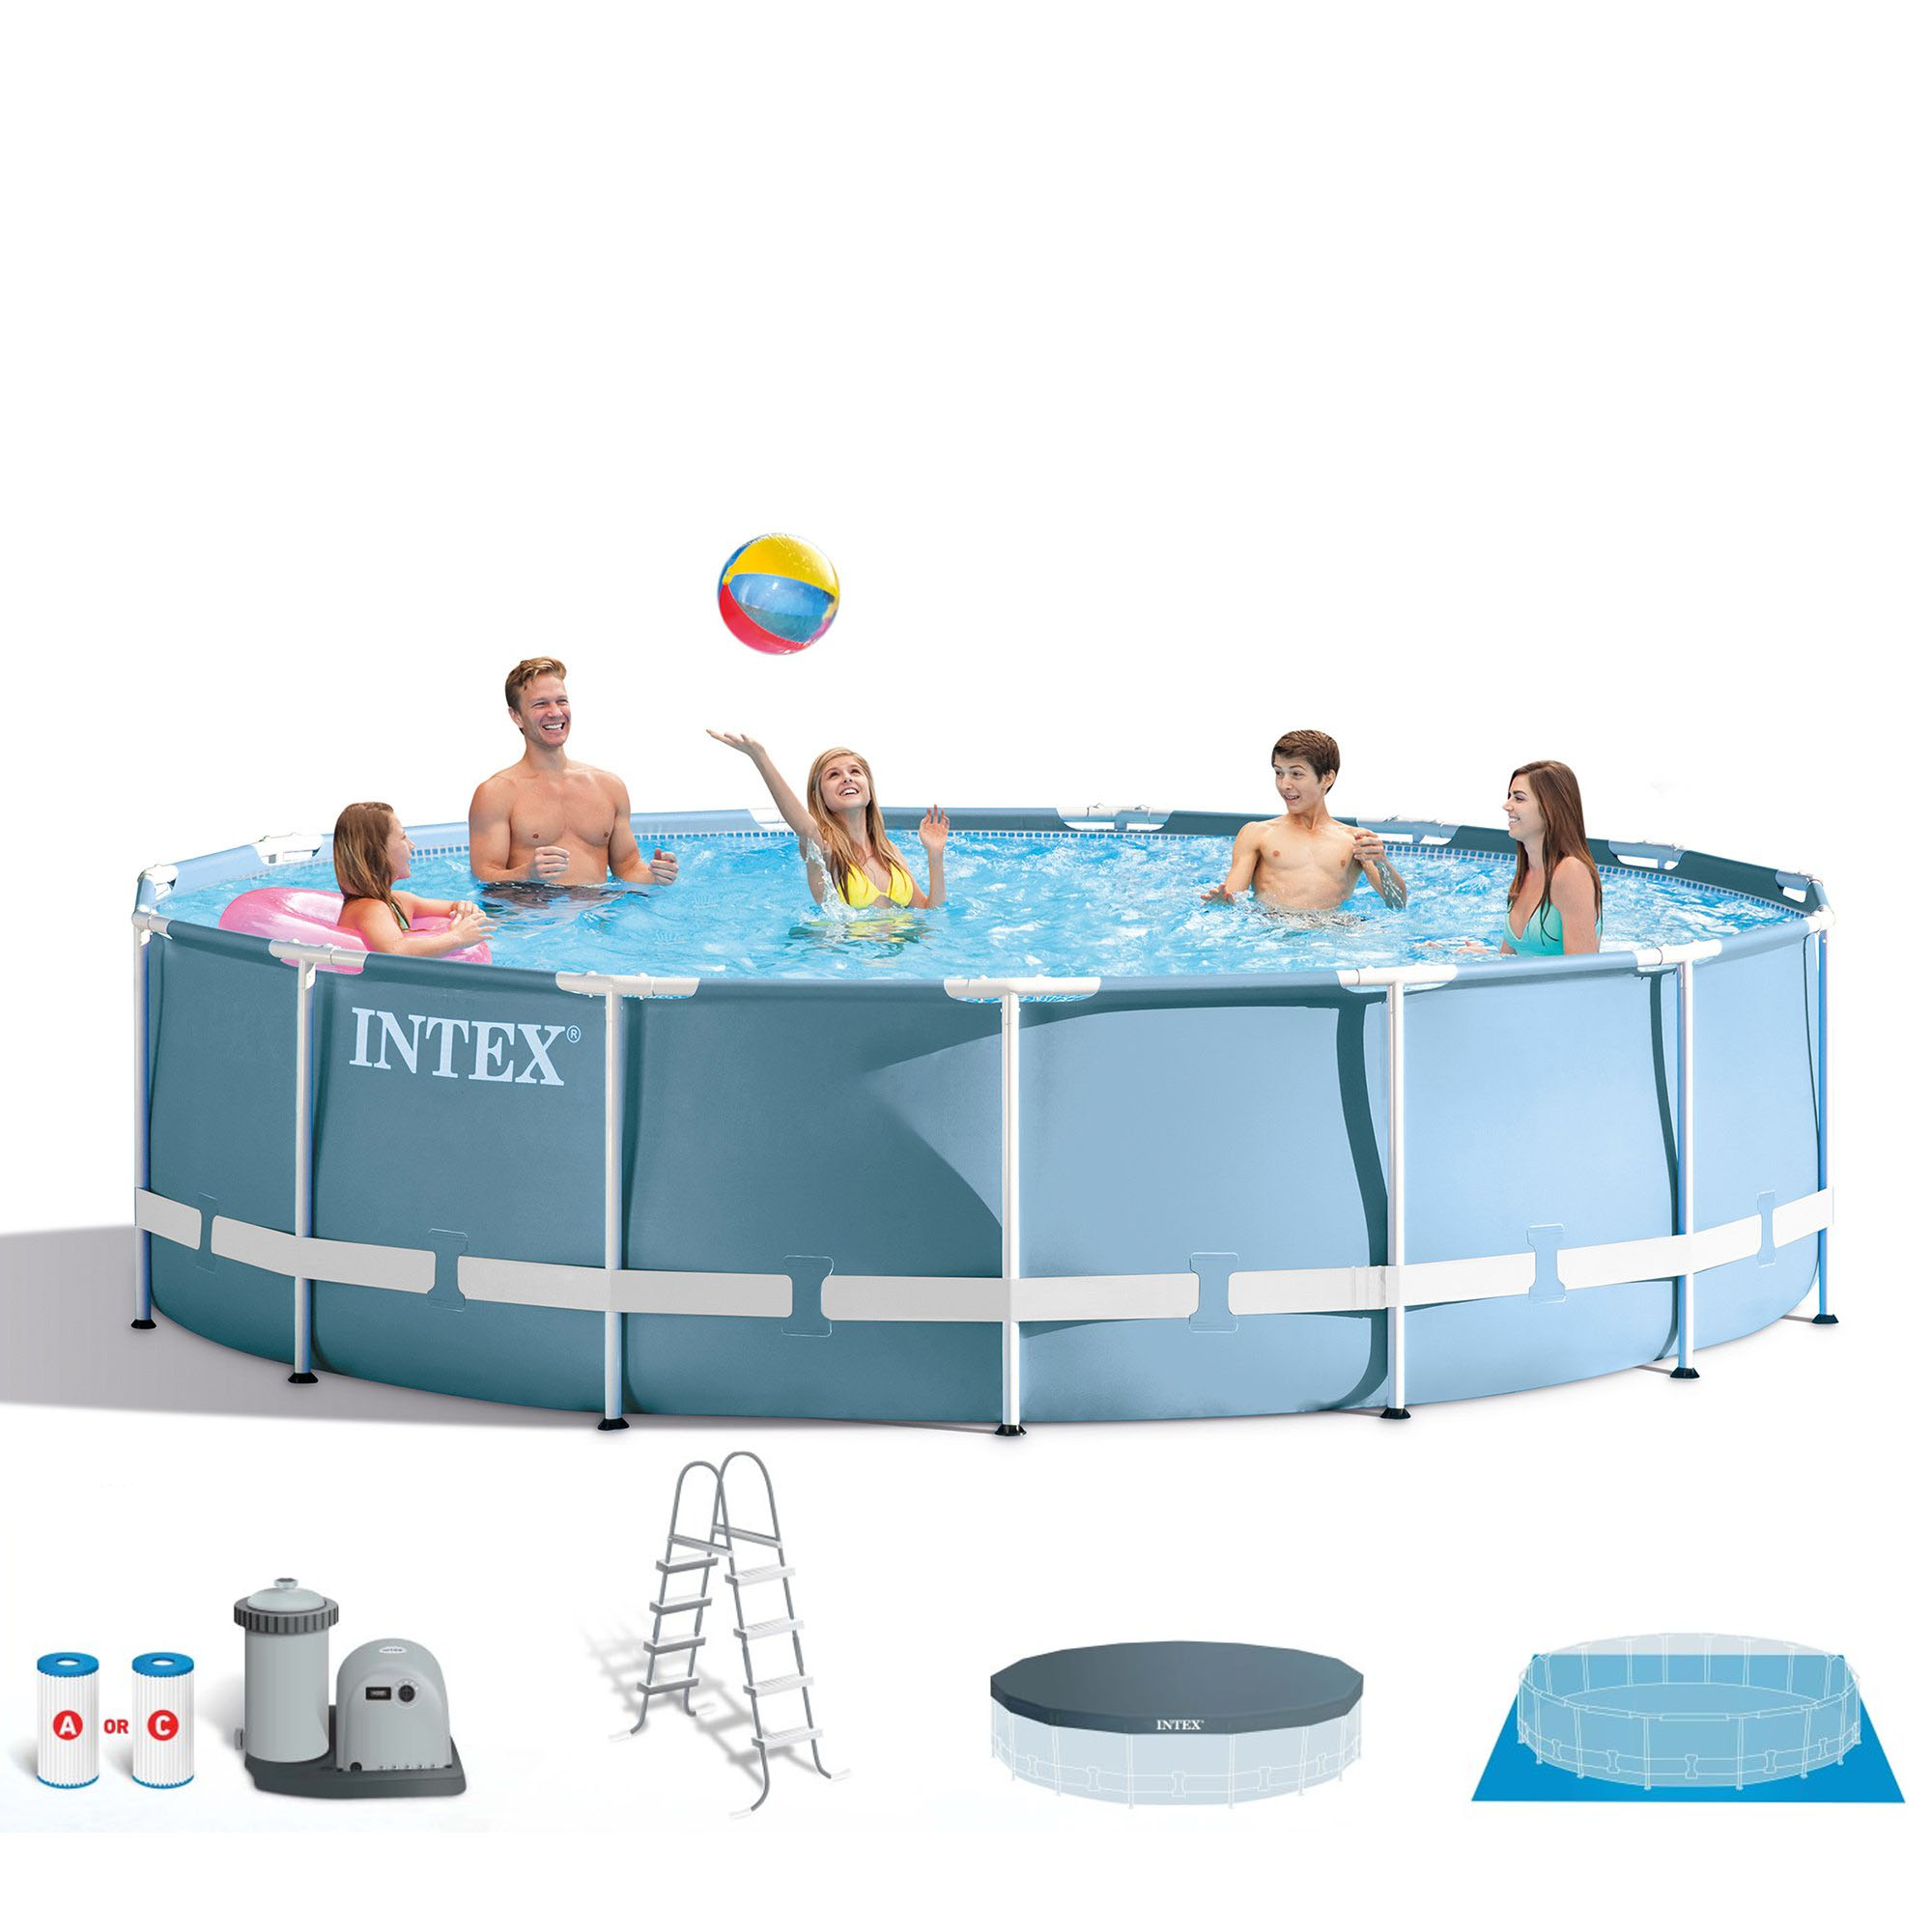 "Intex 18' x 48"" Prism Frame Above Ground Pool Pump Set and Six Filter Cartridges by Intex"